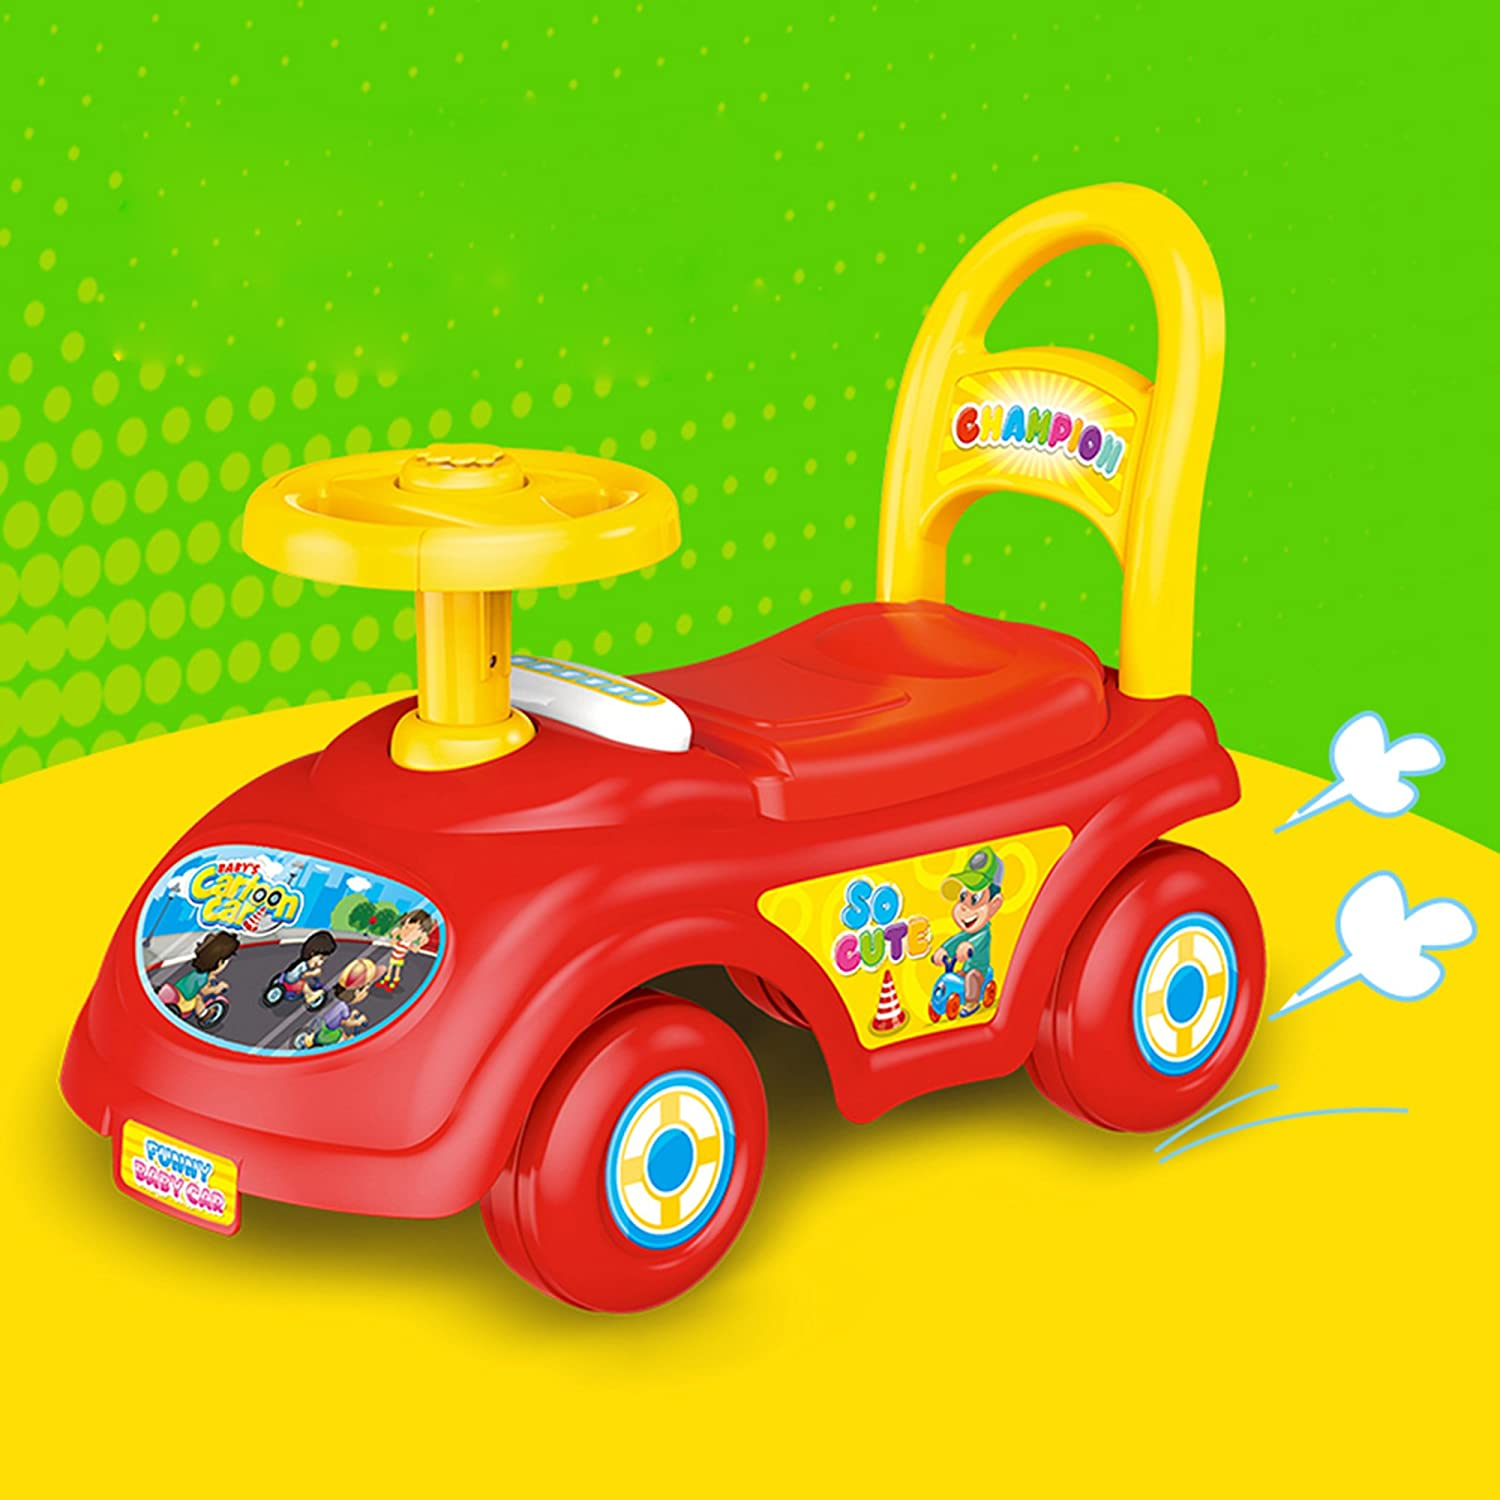 Amazon.com: COLORTREE Baby Ride On Car: Toys & Games